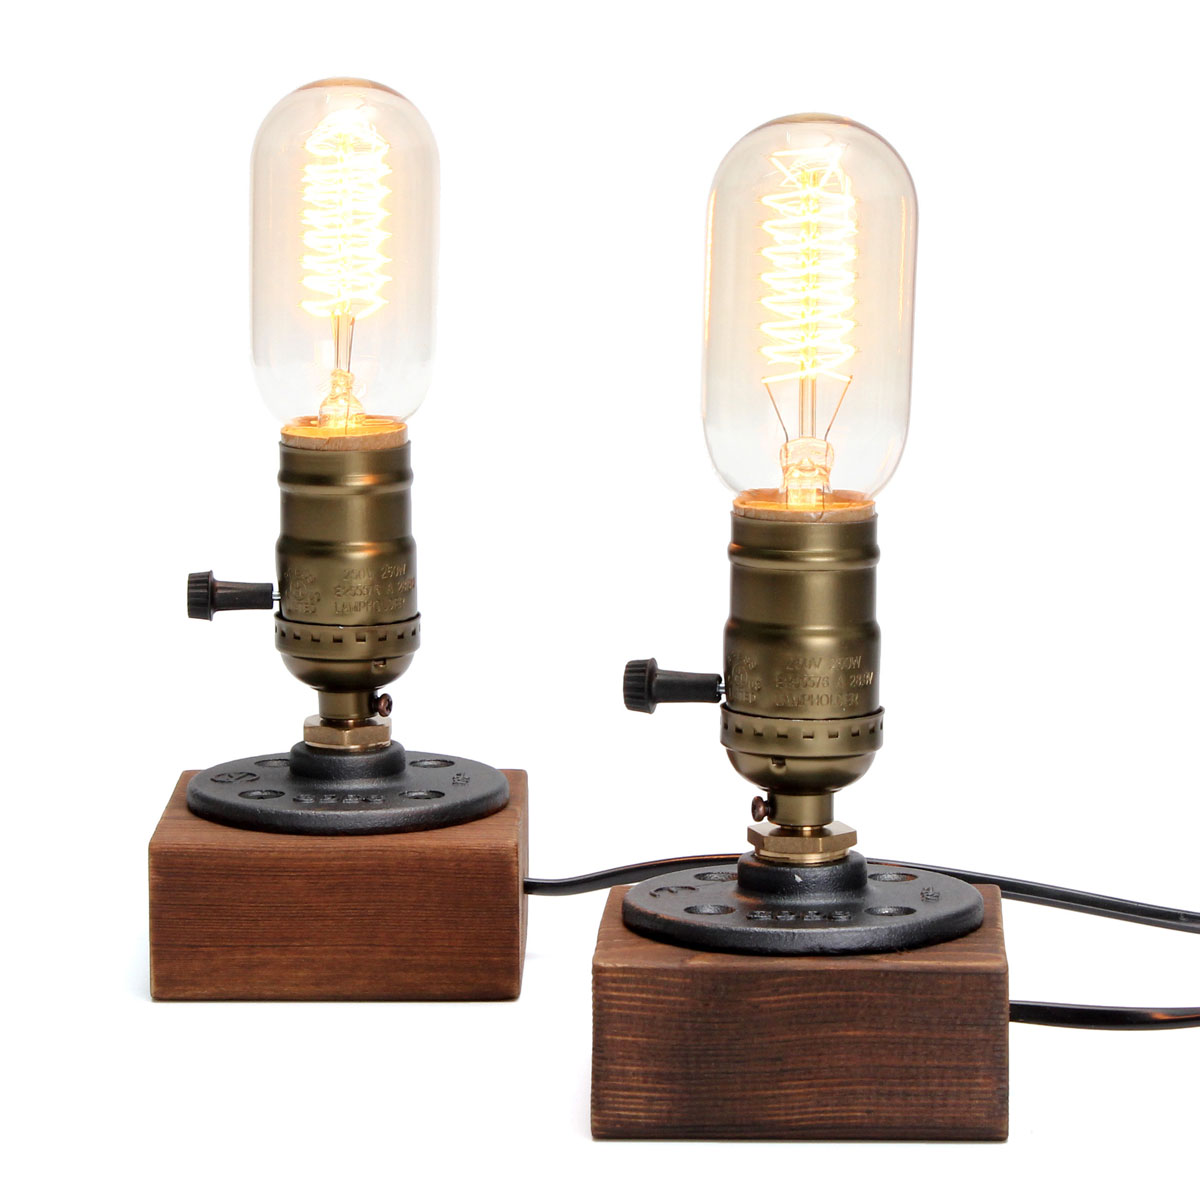 Vintage Desk Light Table Lamp Edison Bulb E27 40W Industrial Retro Wooden Socket Lighting Fixture Dimmable Cafe Decor 110V-220V loft retro coffee shop table lamp wood vintage desk lamp dimmable 40w edison bulb 220v bedroom bar table light desk light wooden